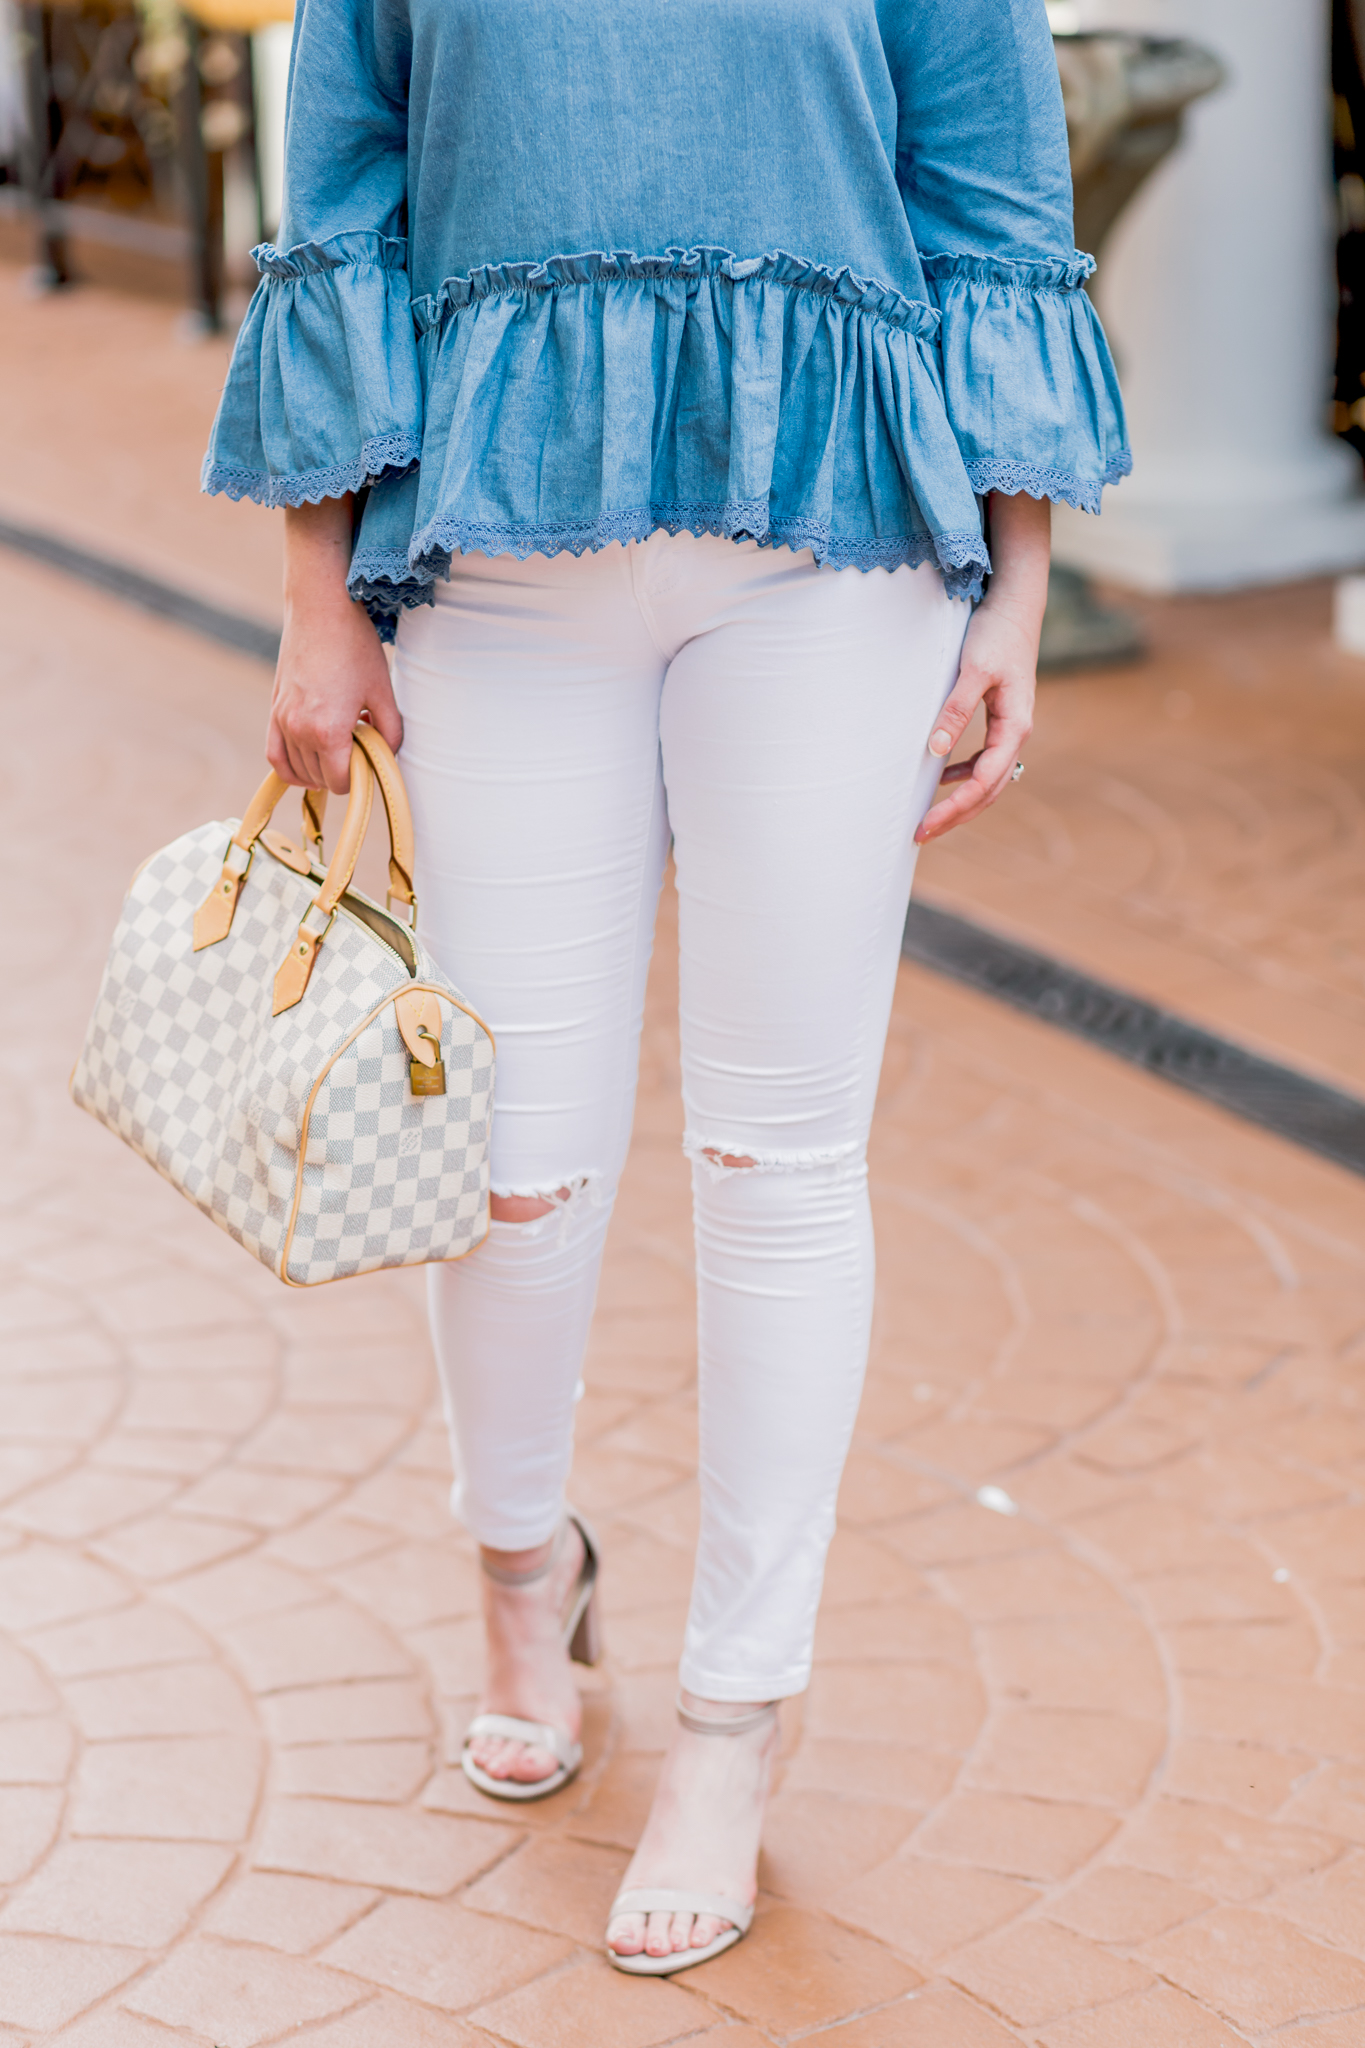 chambray, chambray top, white denim, white ripped jeans, stuart weitzman barely nude, louis vuitton speedy 25, damier azur, topshop jamie jeans